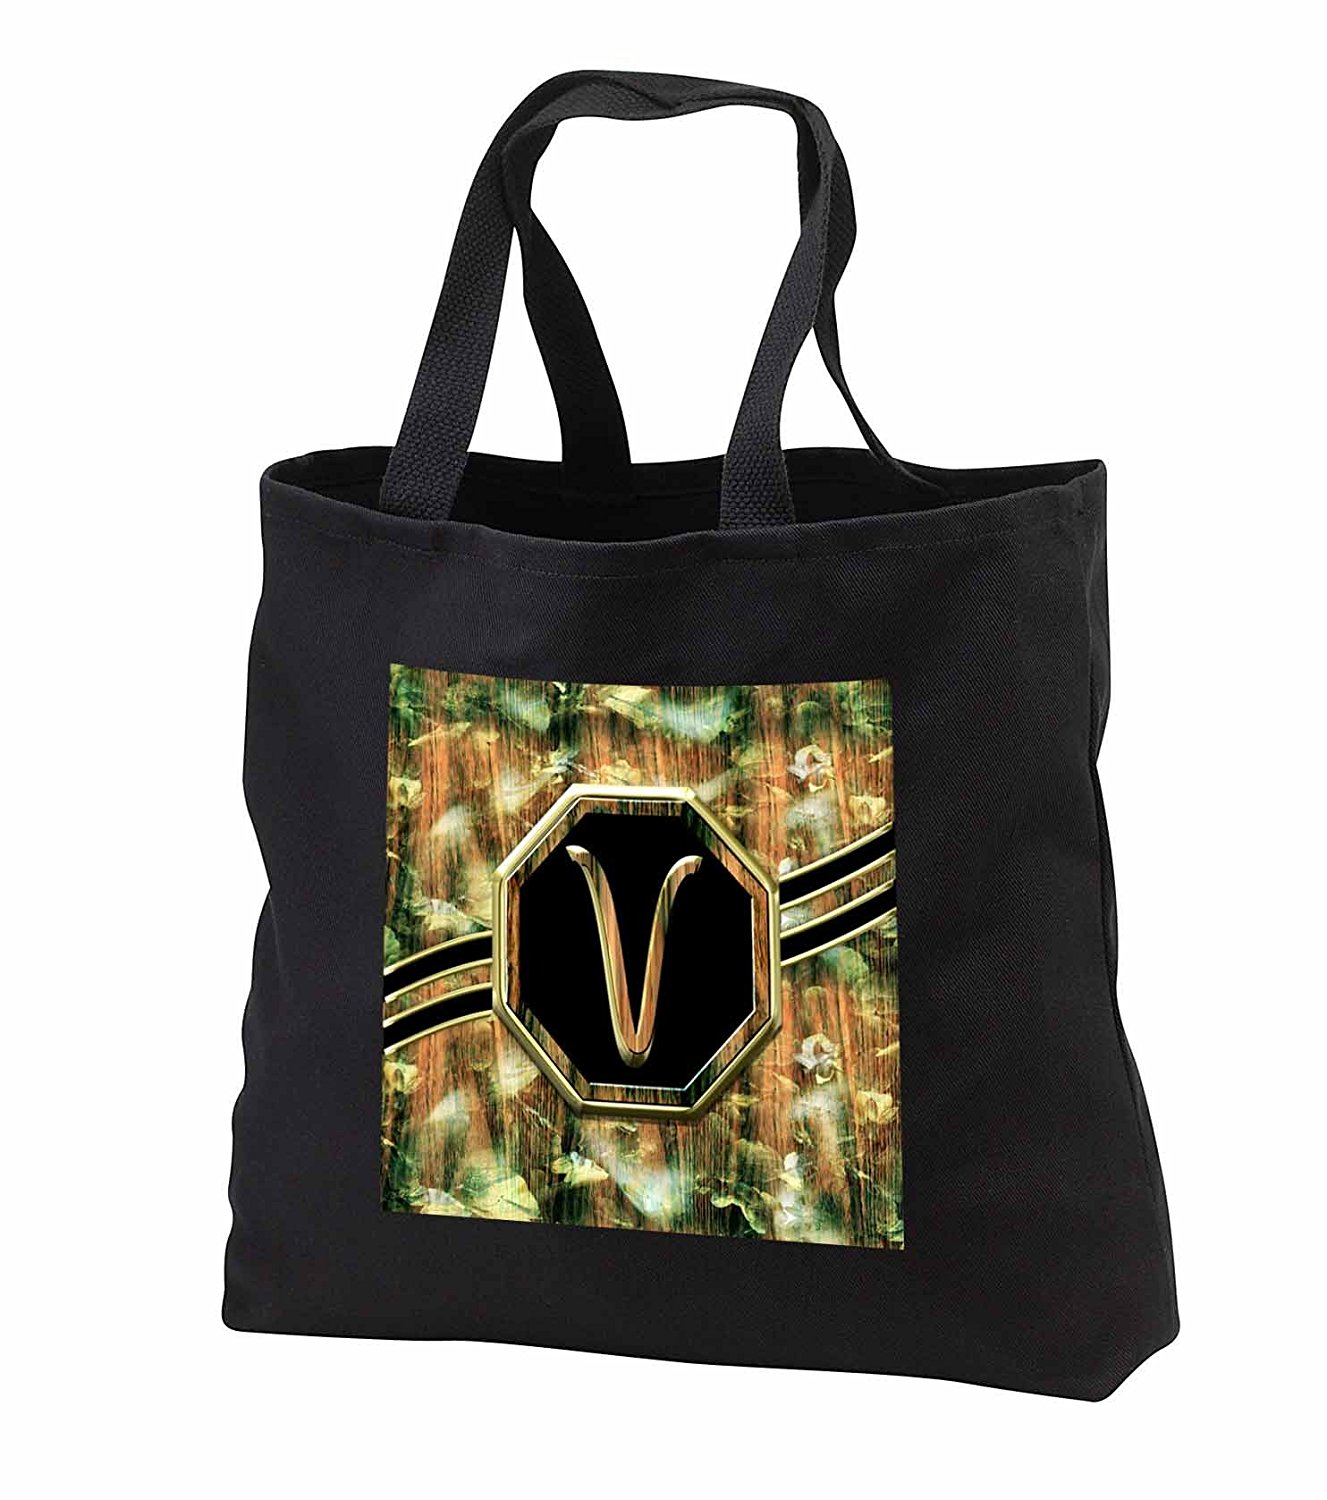 tb_242351 Charlyn Woodruff - CW Designs Monogram Camouflage - Elegant Camouflage Monogram Letter V Faux Gold Wood Grain Image - Tote Bags